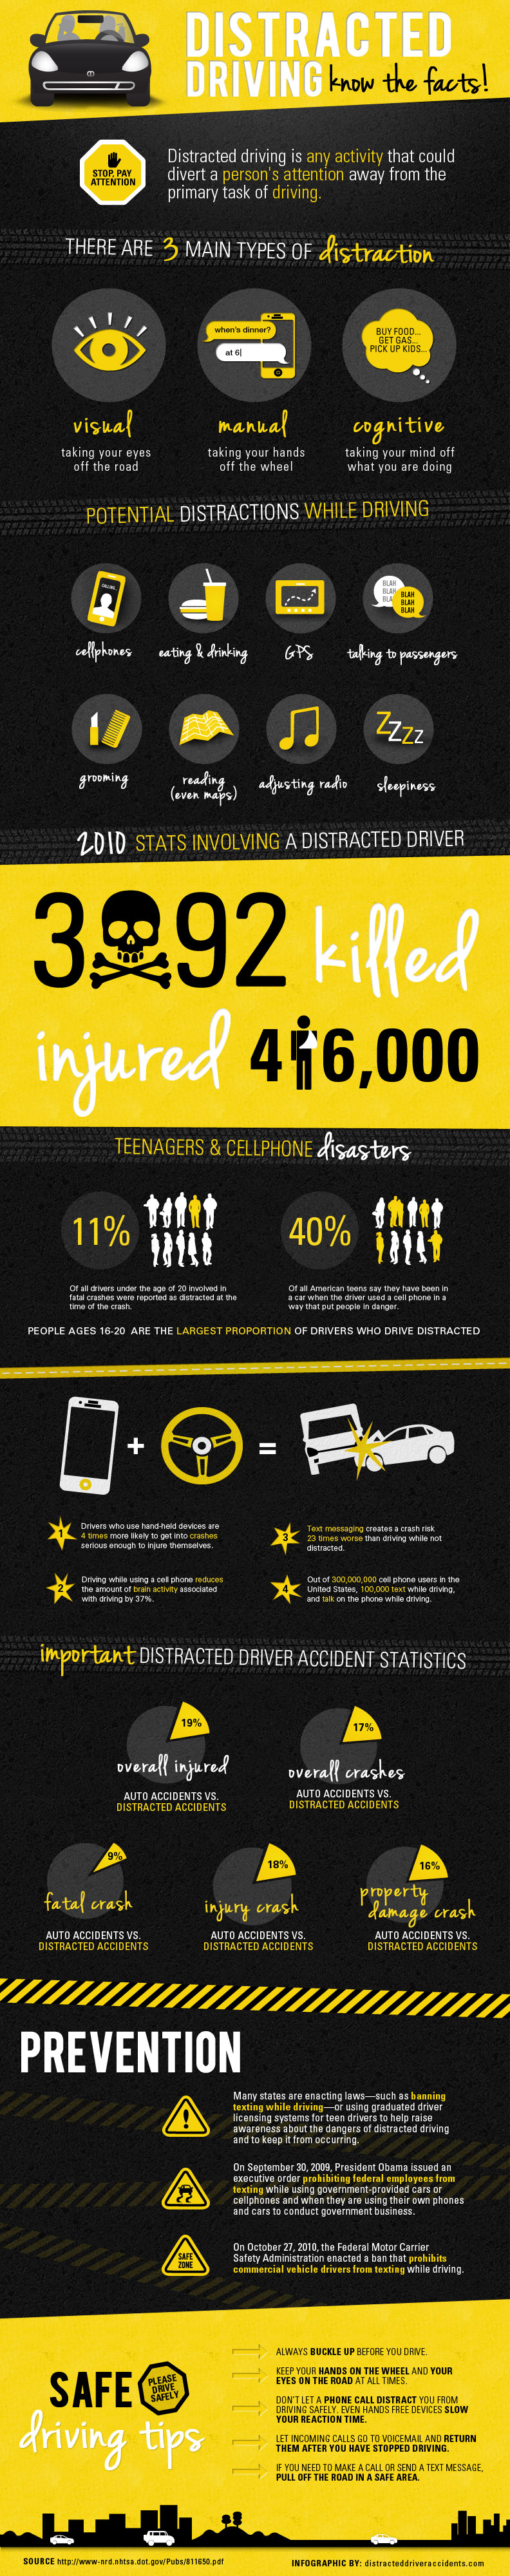 Distracted-Driving-infographic